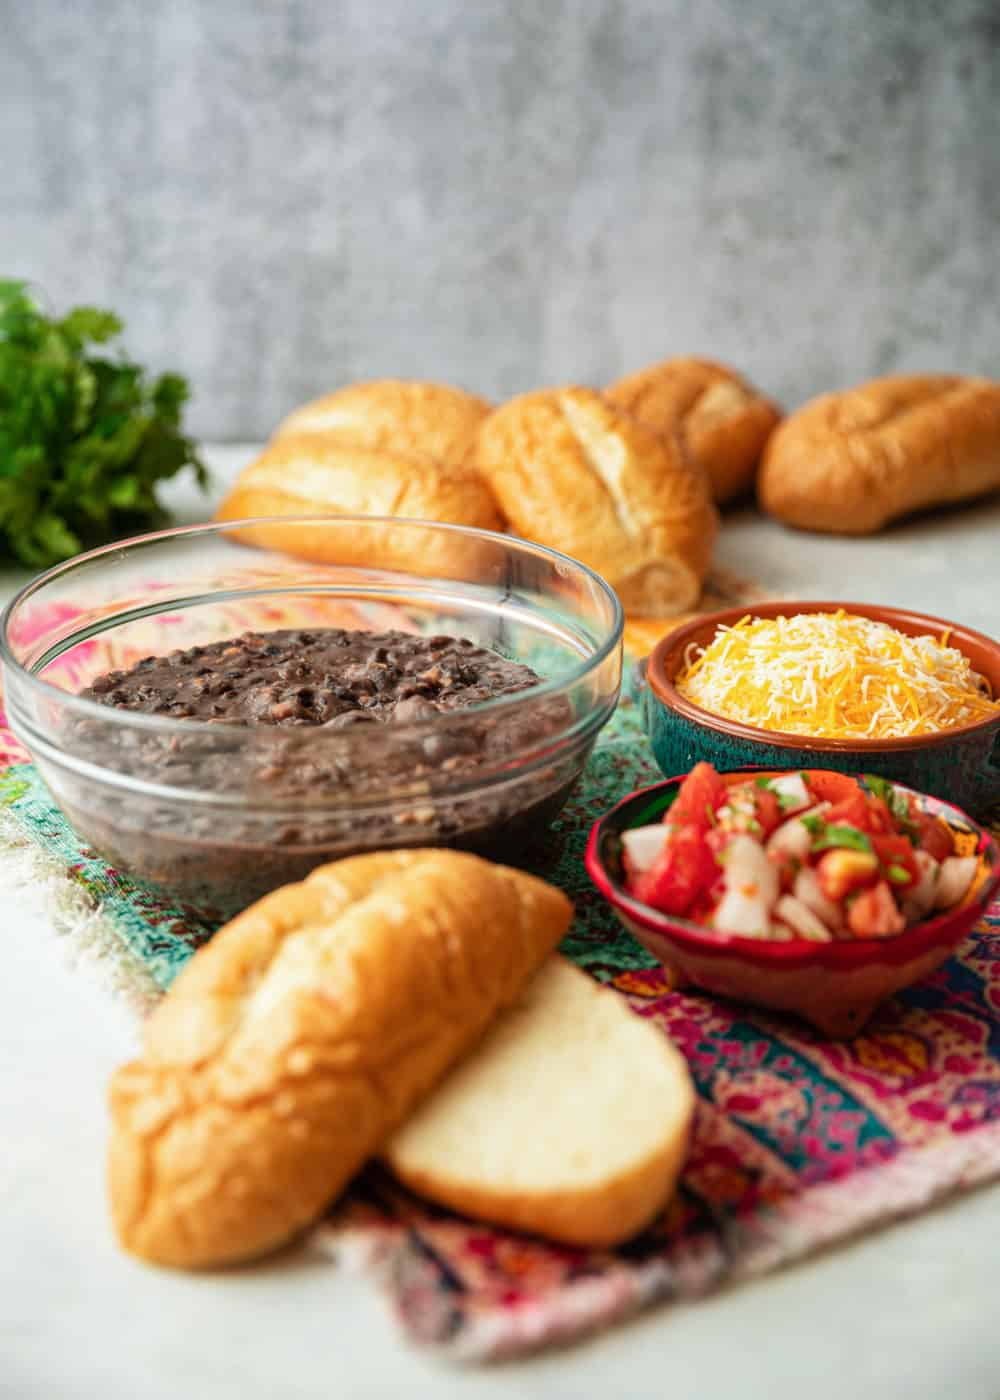 bread, refried beans and pico de gallo